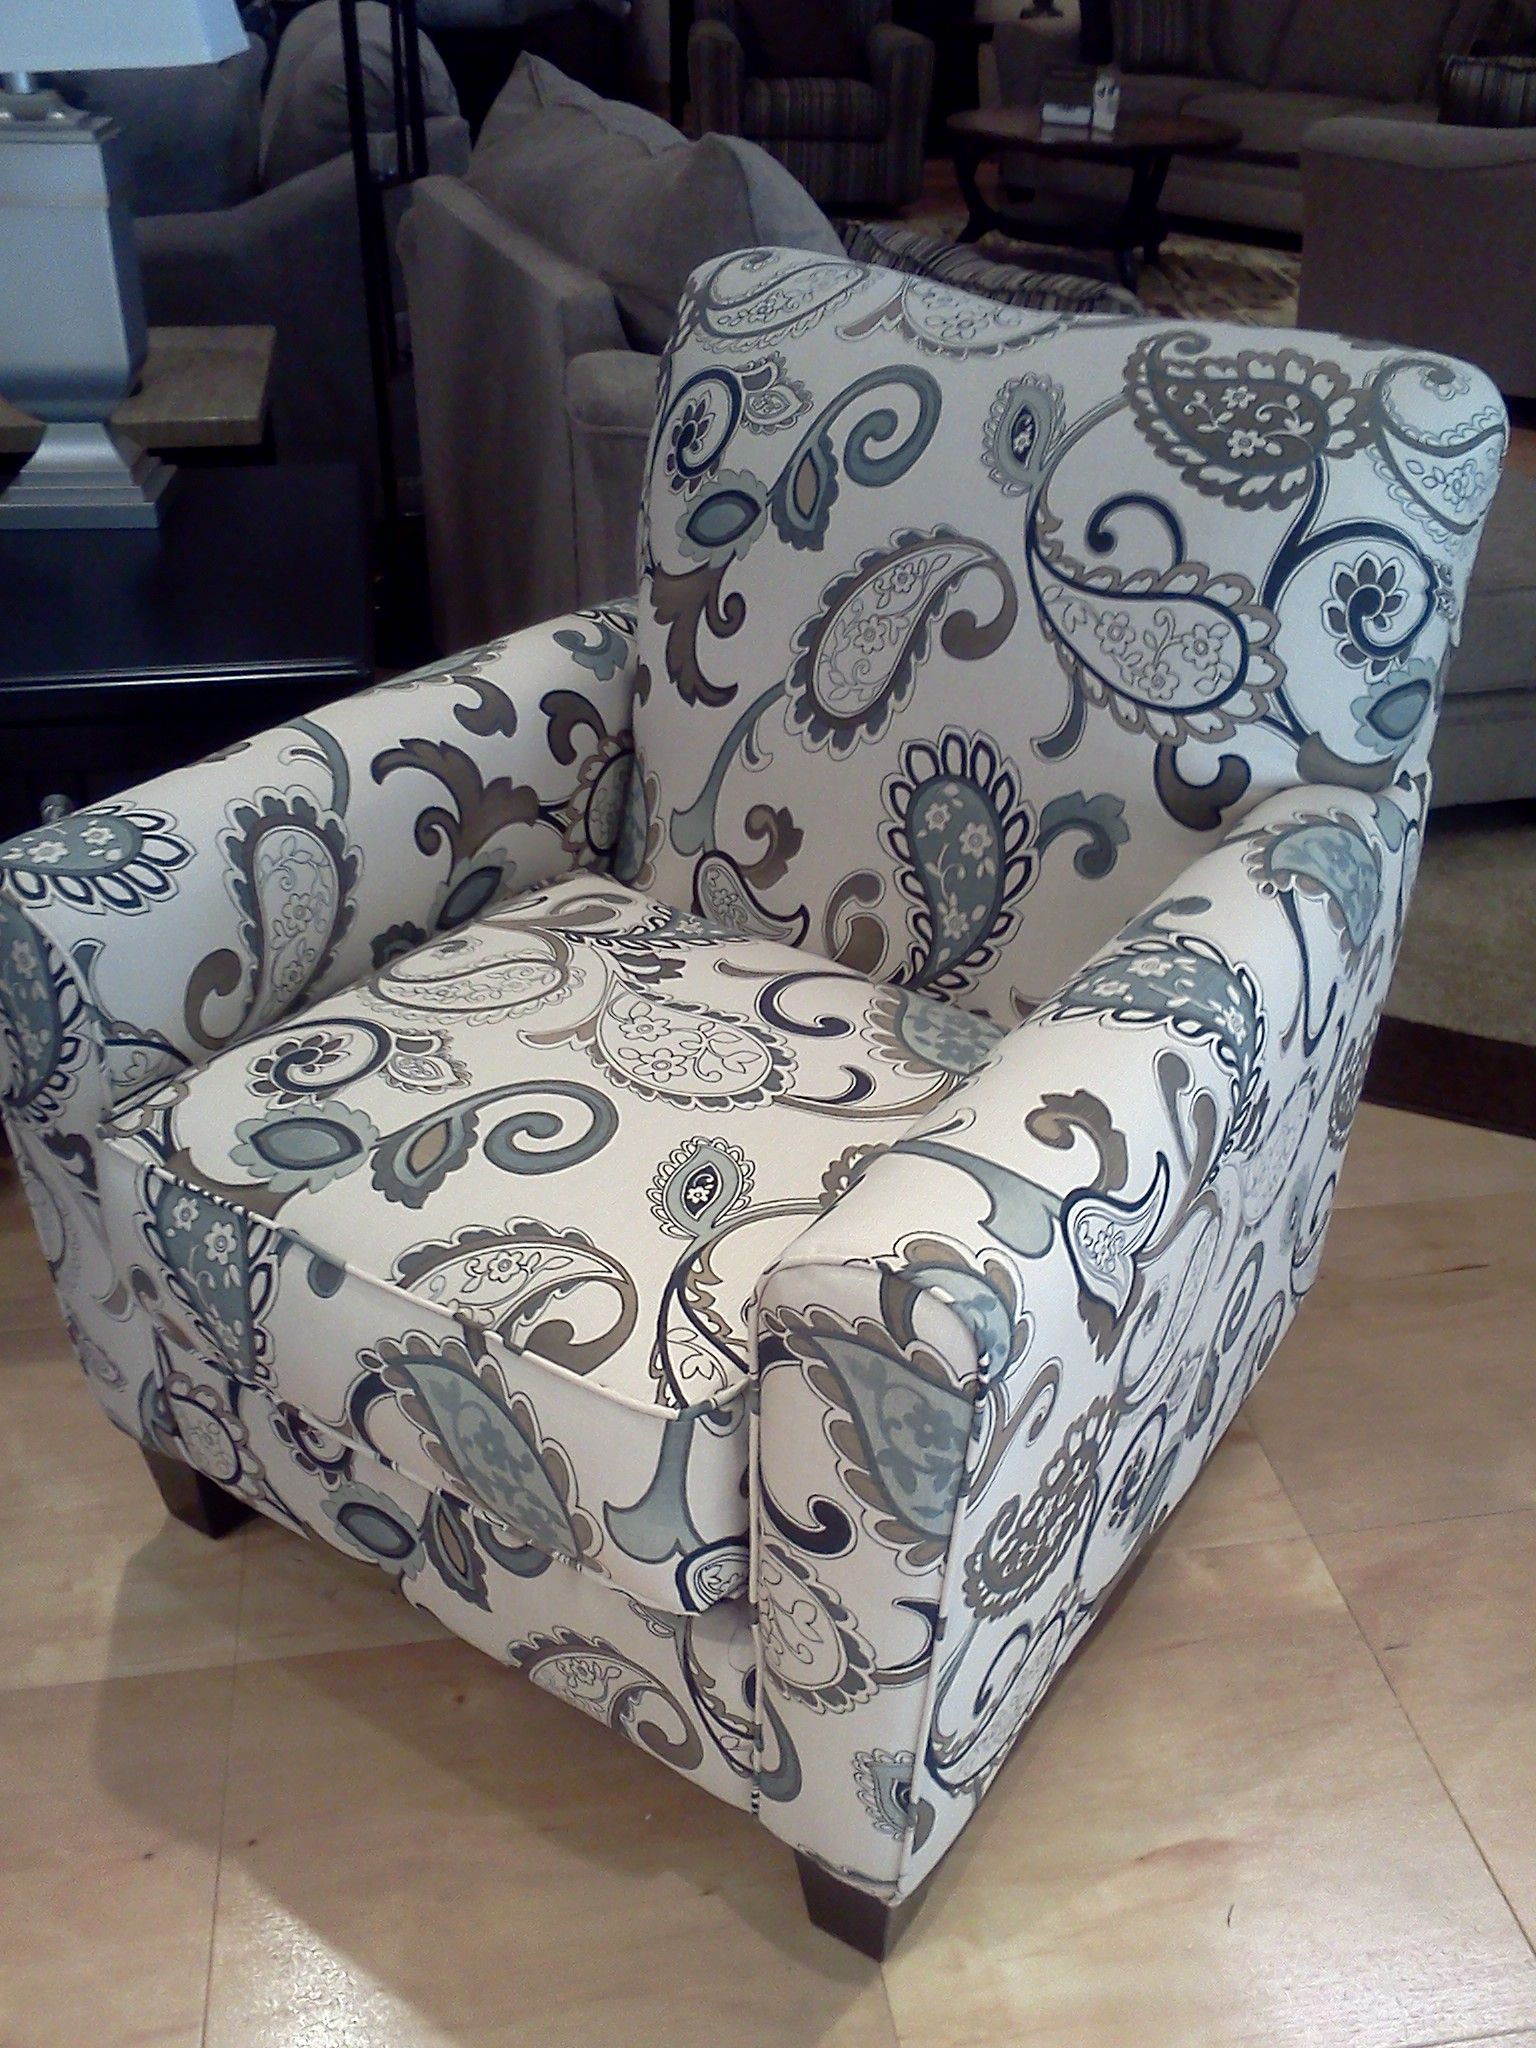 Love This Chair Ashley Furniture Store My New Chair For The Loft